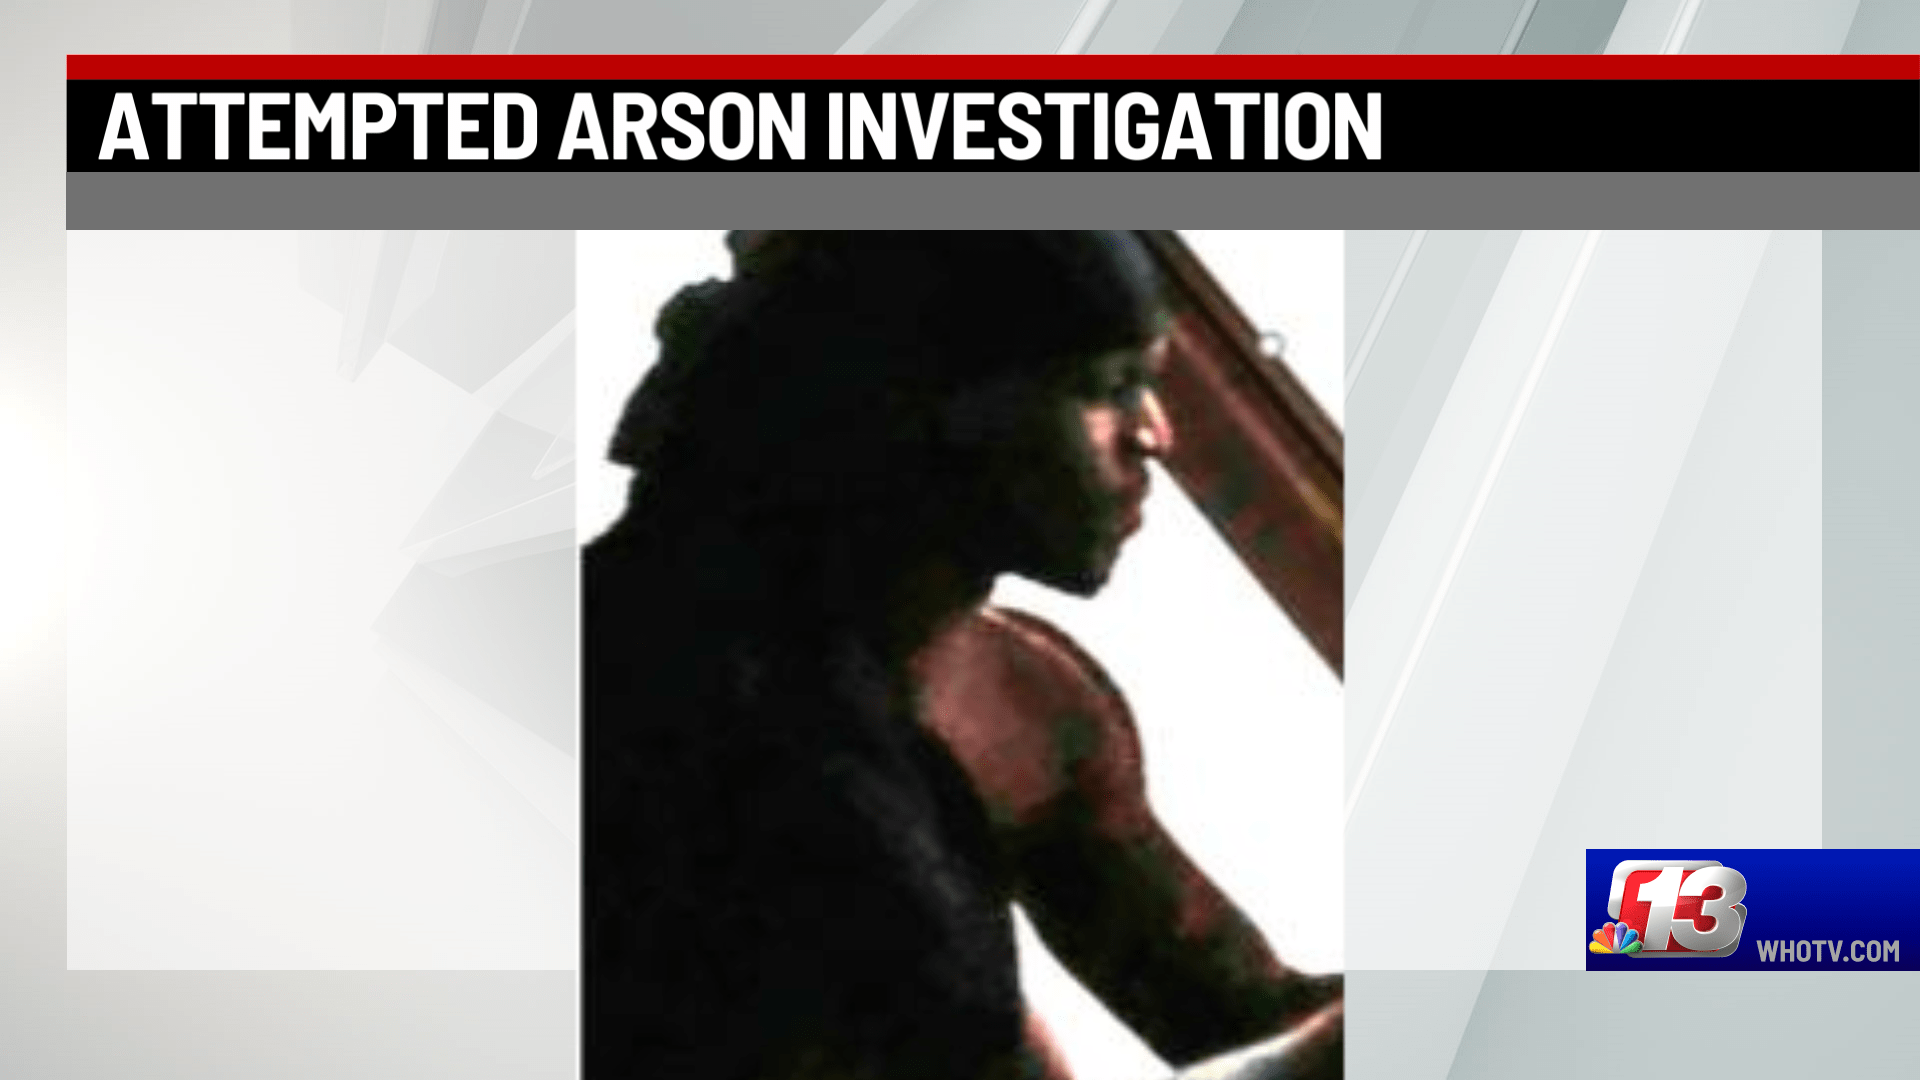 Des Moines Police Asking for Help to Identify Courthouse Arson Suspect 8